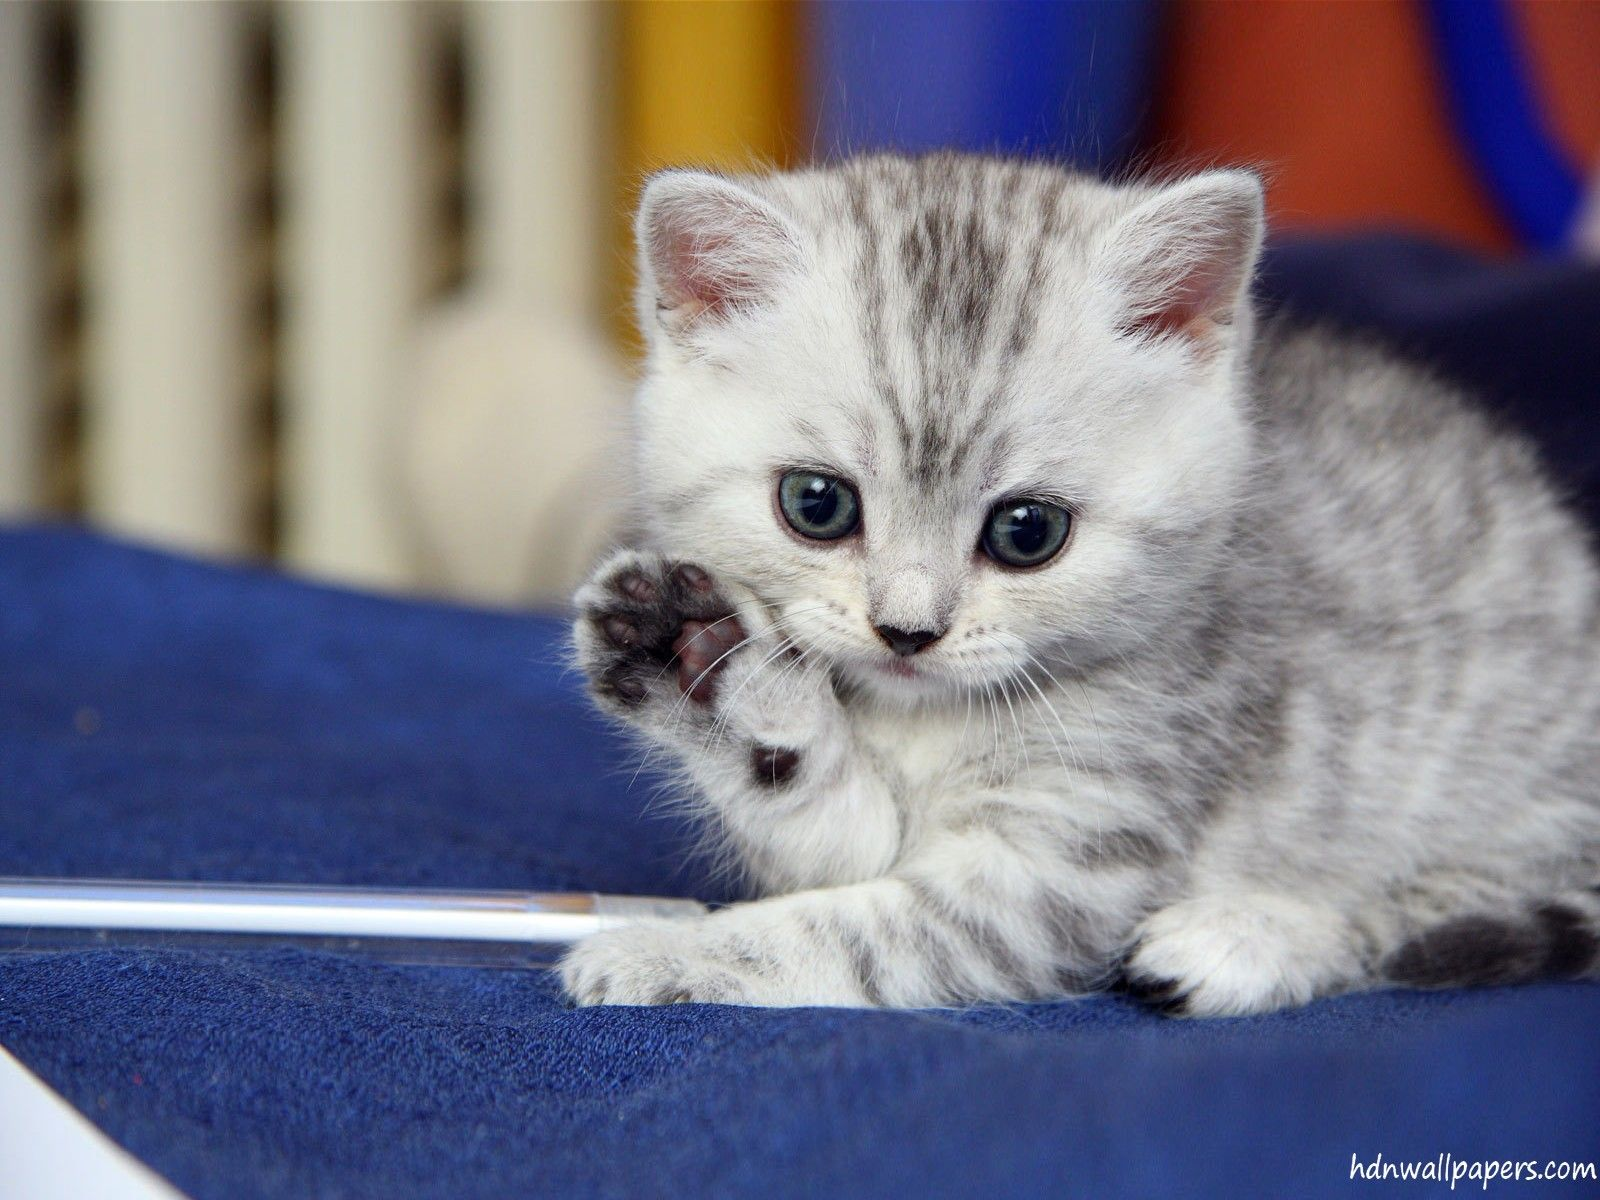 Cute Cats And Kittens Wallpapers Top Free Cute Cats And Kittens